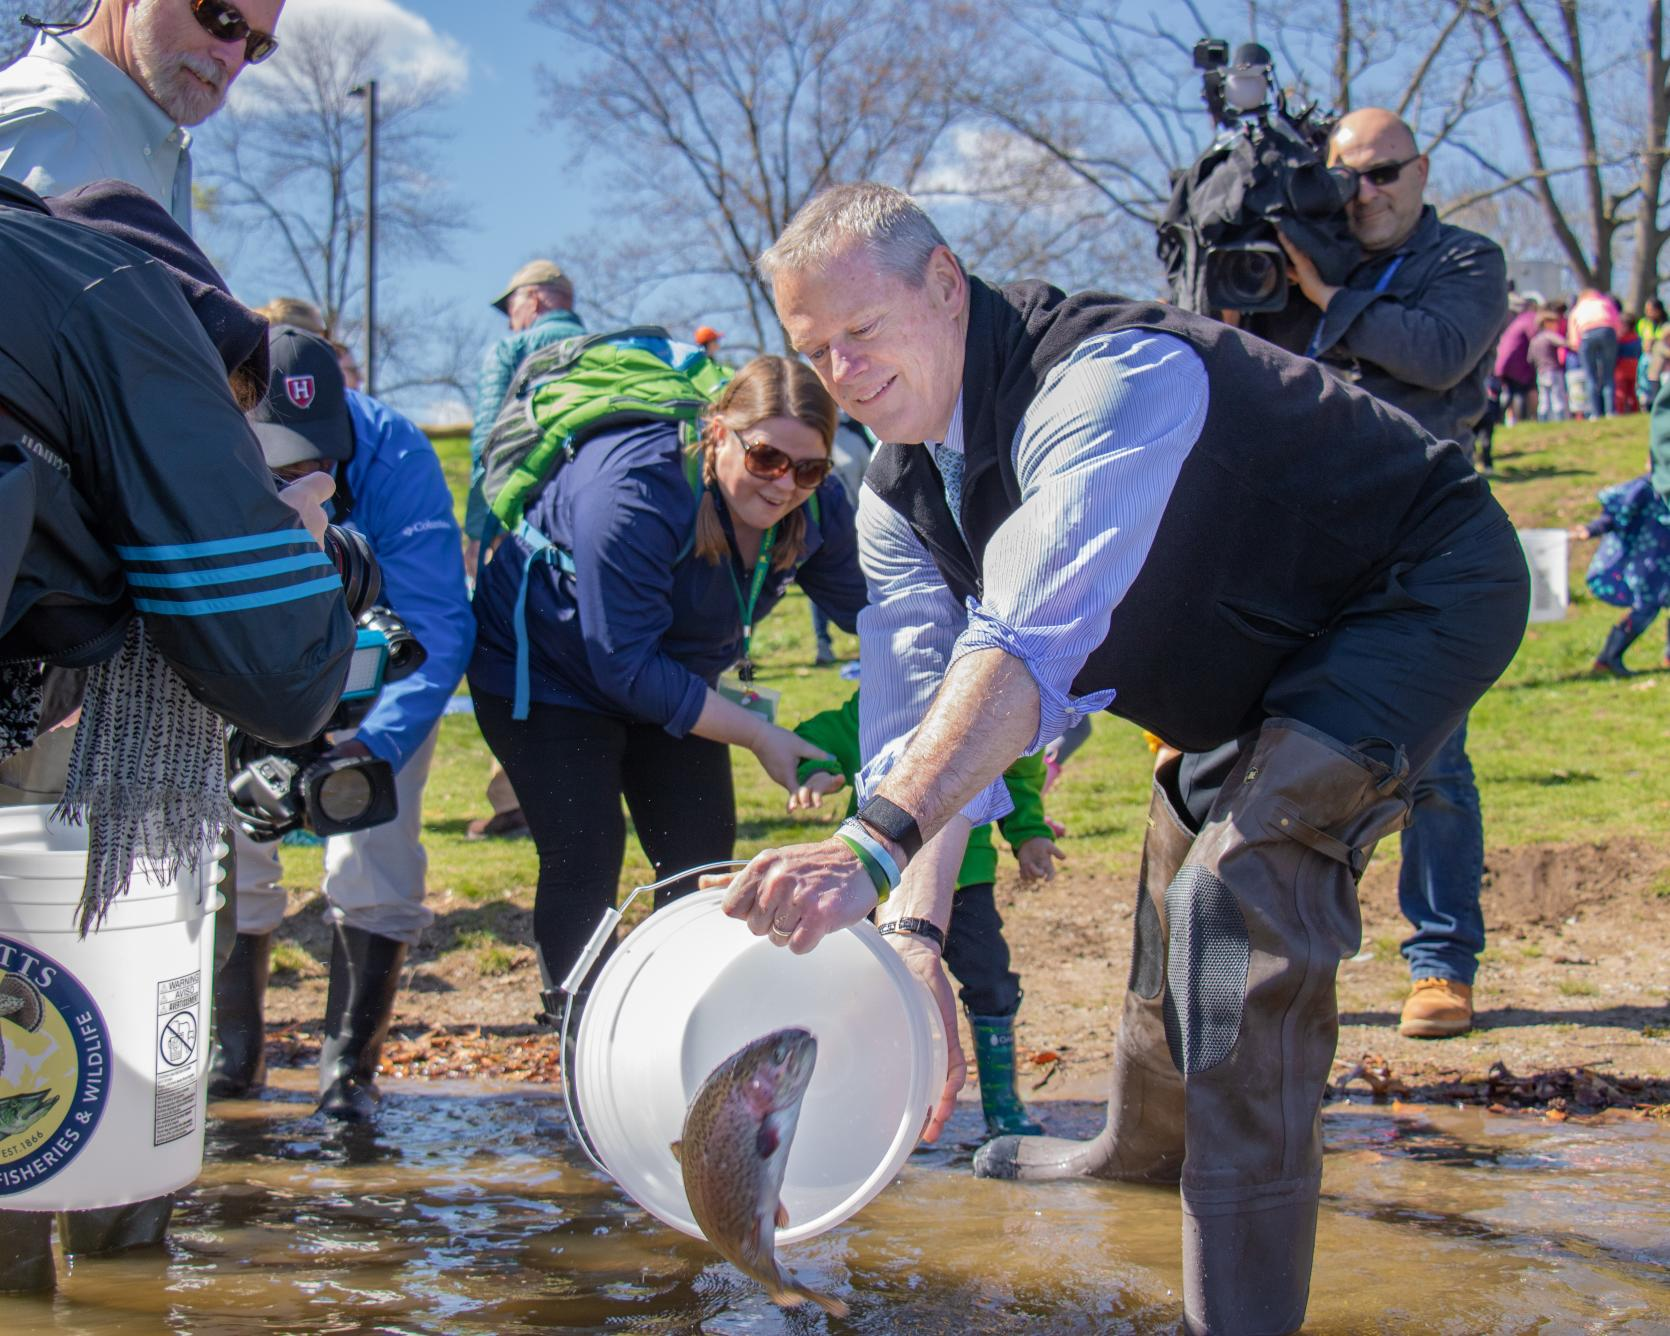 Governor Baker, State Environmental Officials, Local Youth Stock Trout at Boston's Jamaica Pond